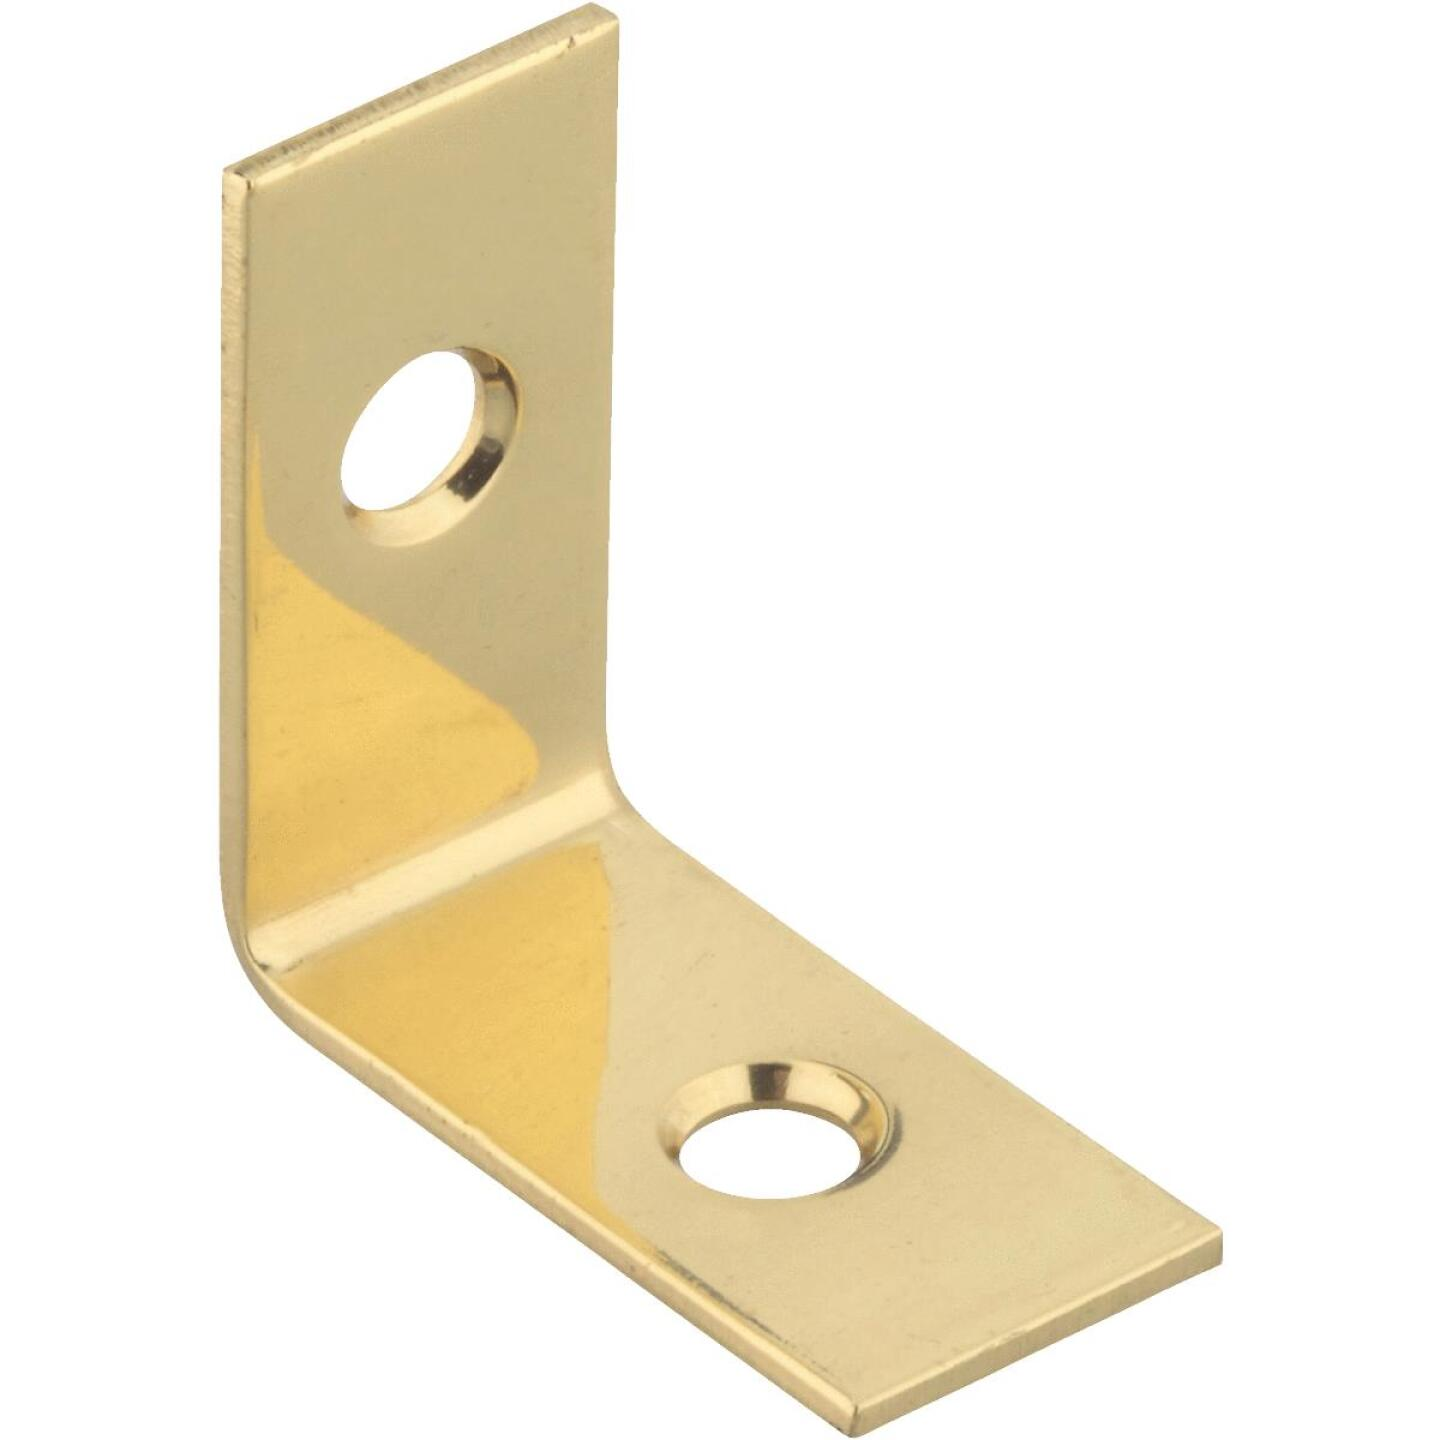 National Catalog V1875 1 In. x 1/2 In. Solid Brass Corner Brace Image 1